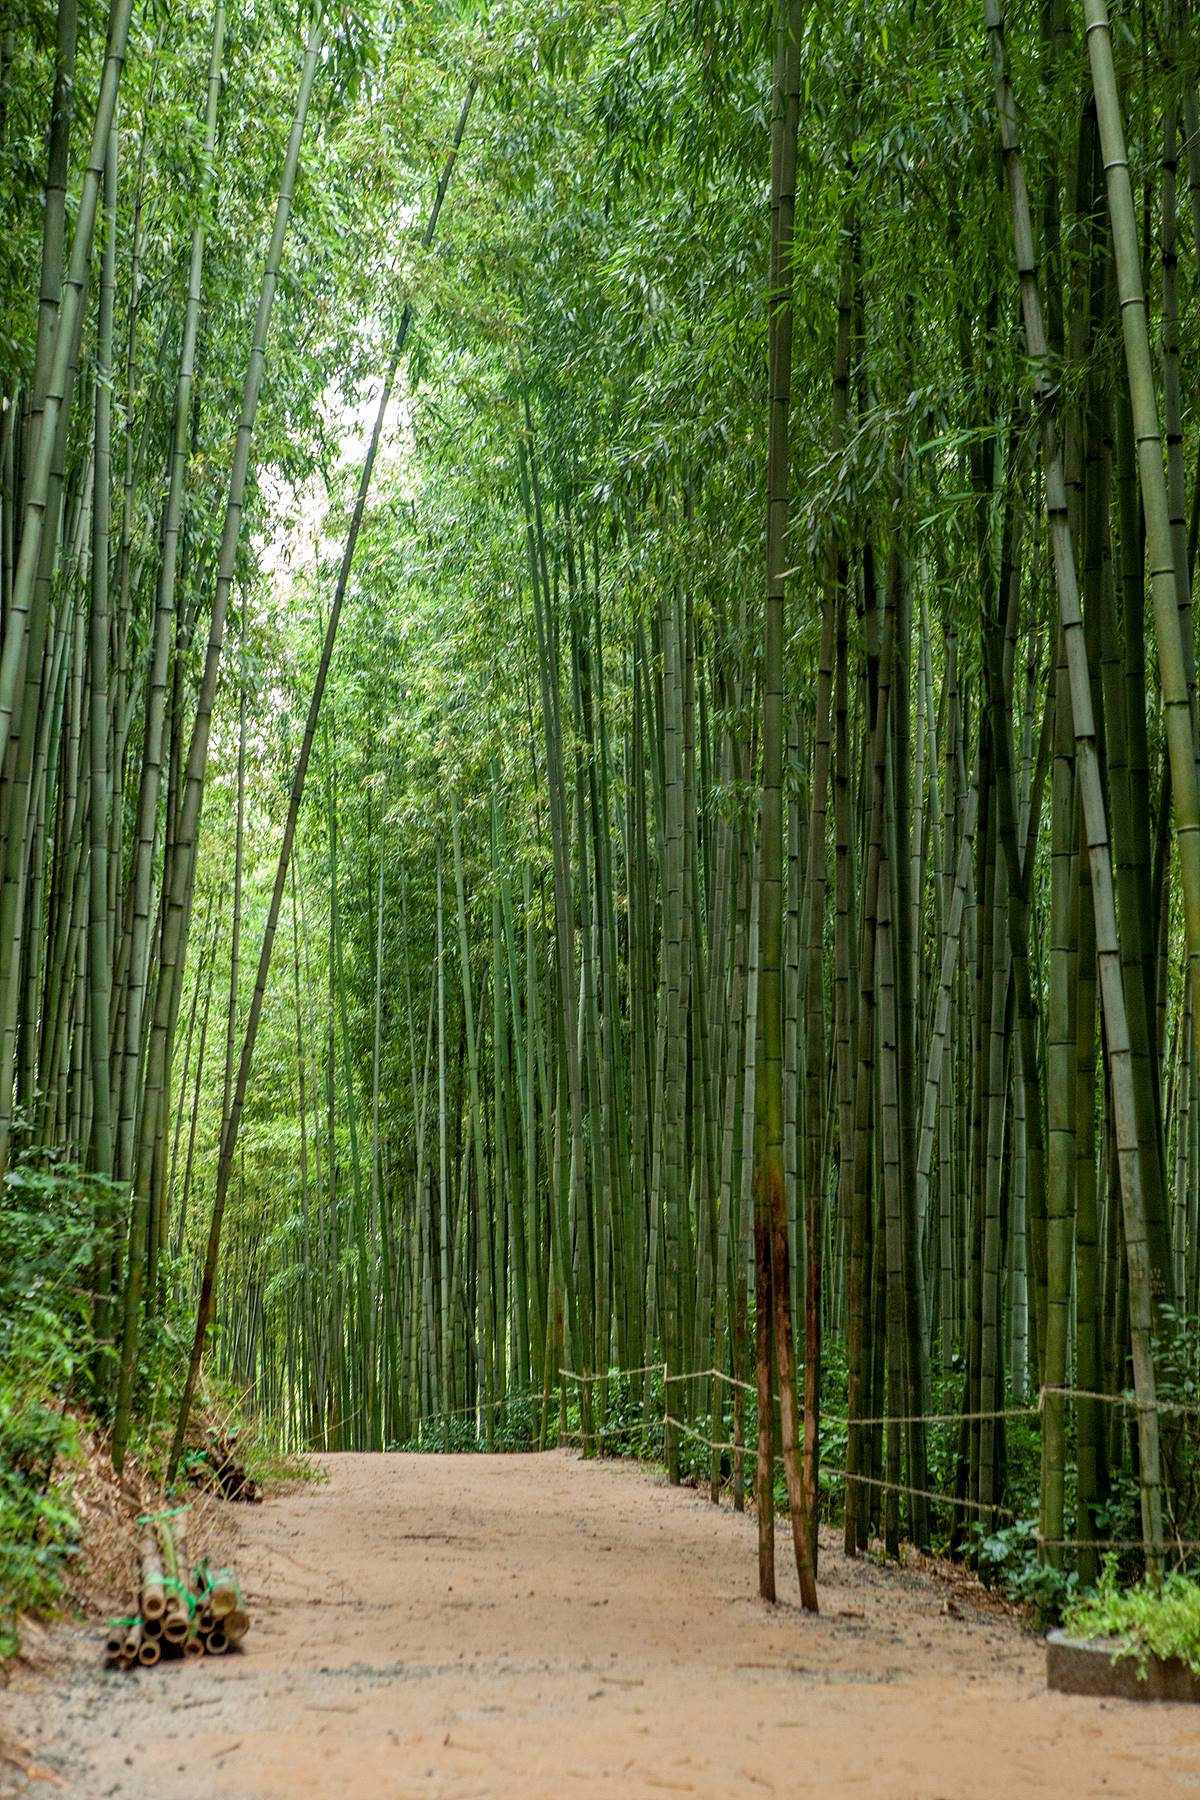 The wind blowing through the bamboo trees relaxes the mind and body, it feels refreshing to feel the sunshine.